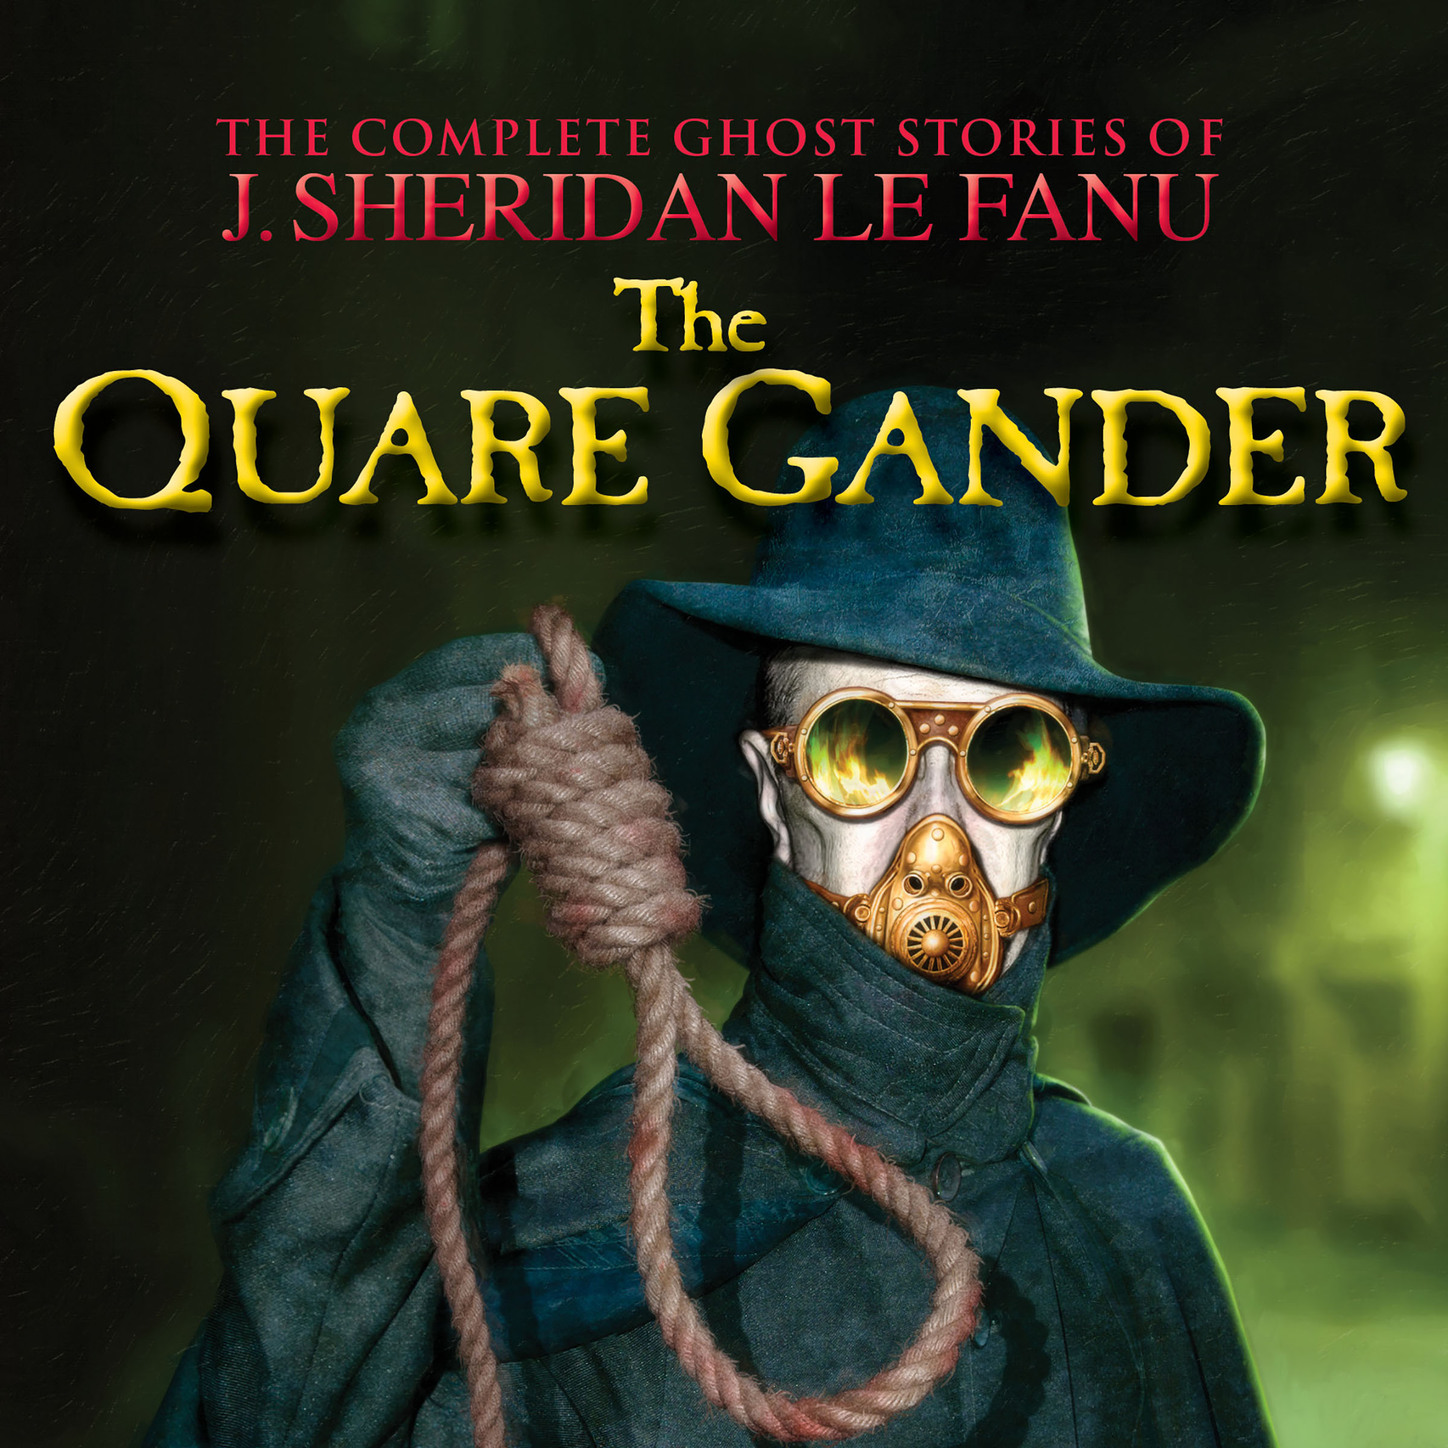 J. Sheridan Le Fanu The Quare Gander - The Complete Ghost Stories of J. Sheridan Le Fanu, Vol. 6 of 30 (Unabridged) le fanu joseph sheridan the tenants of malory volume 1